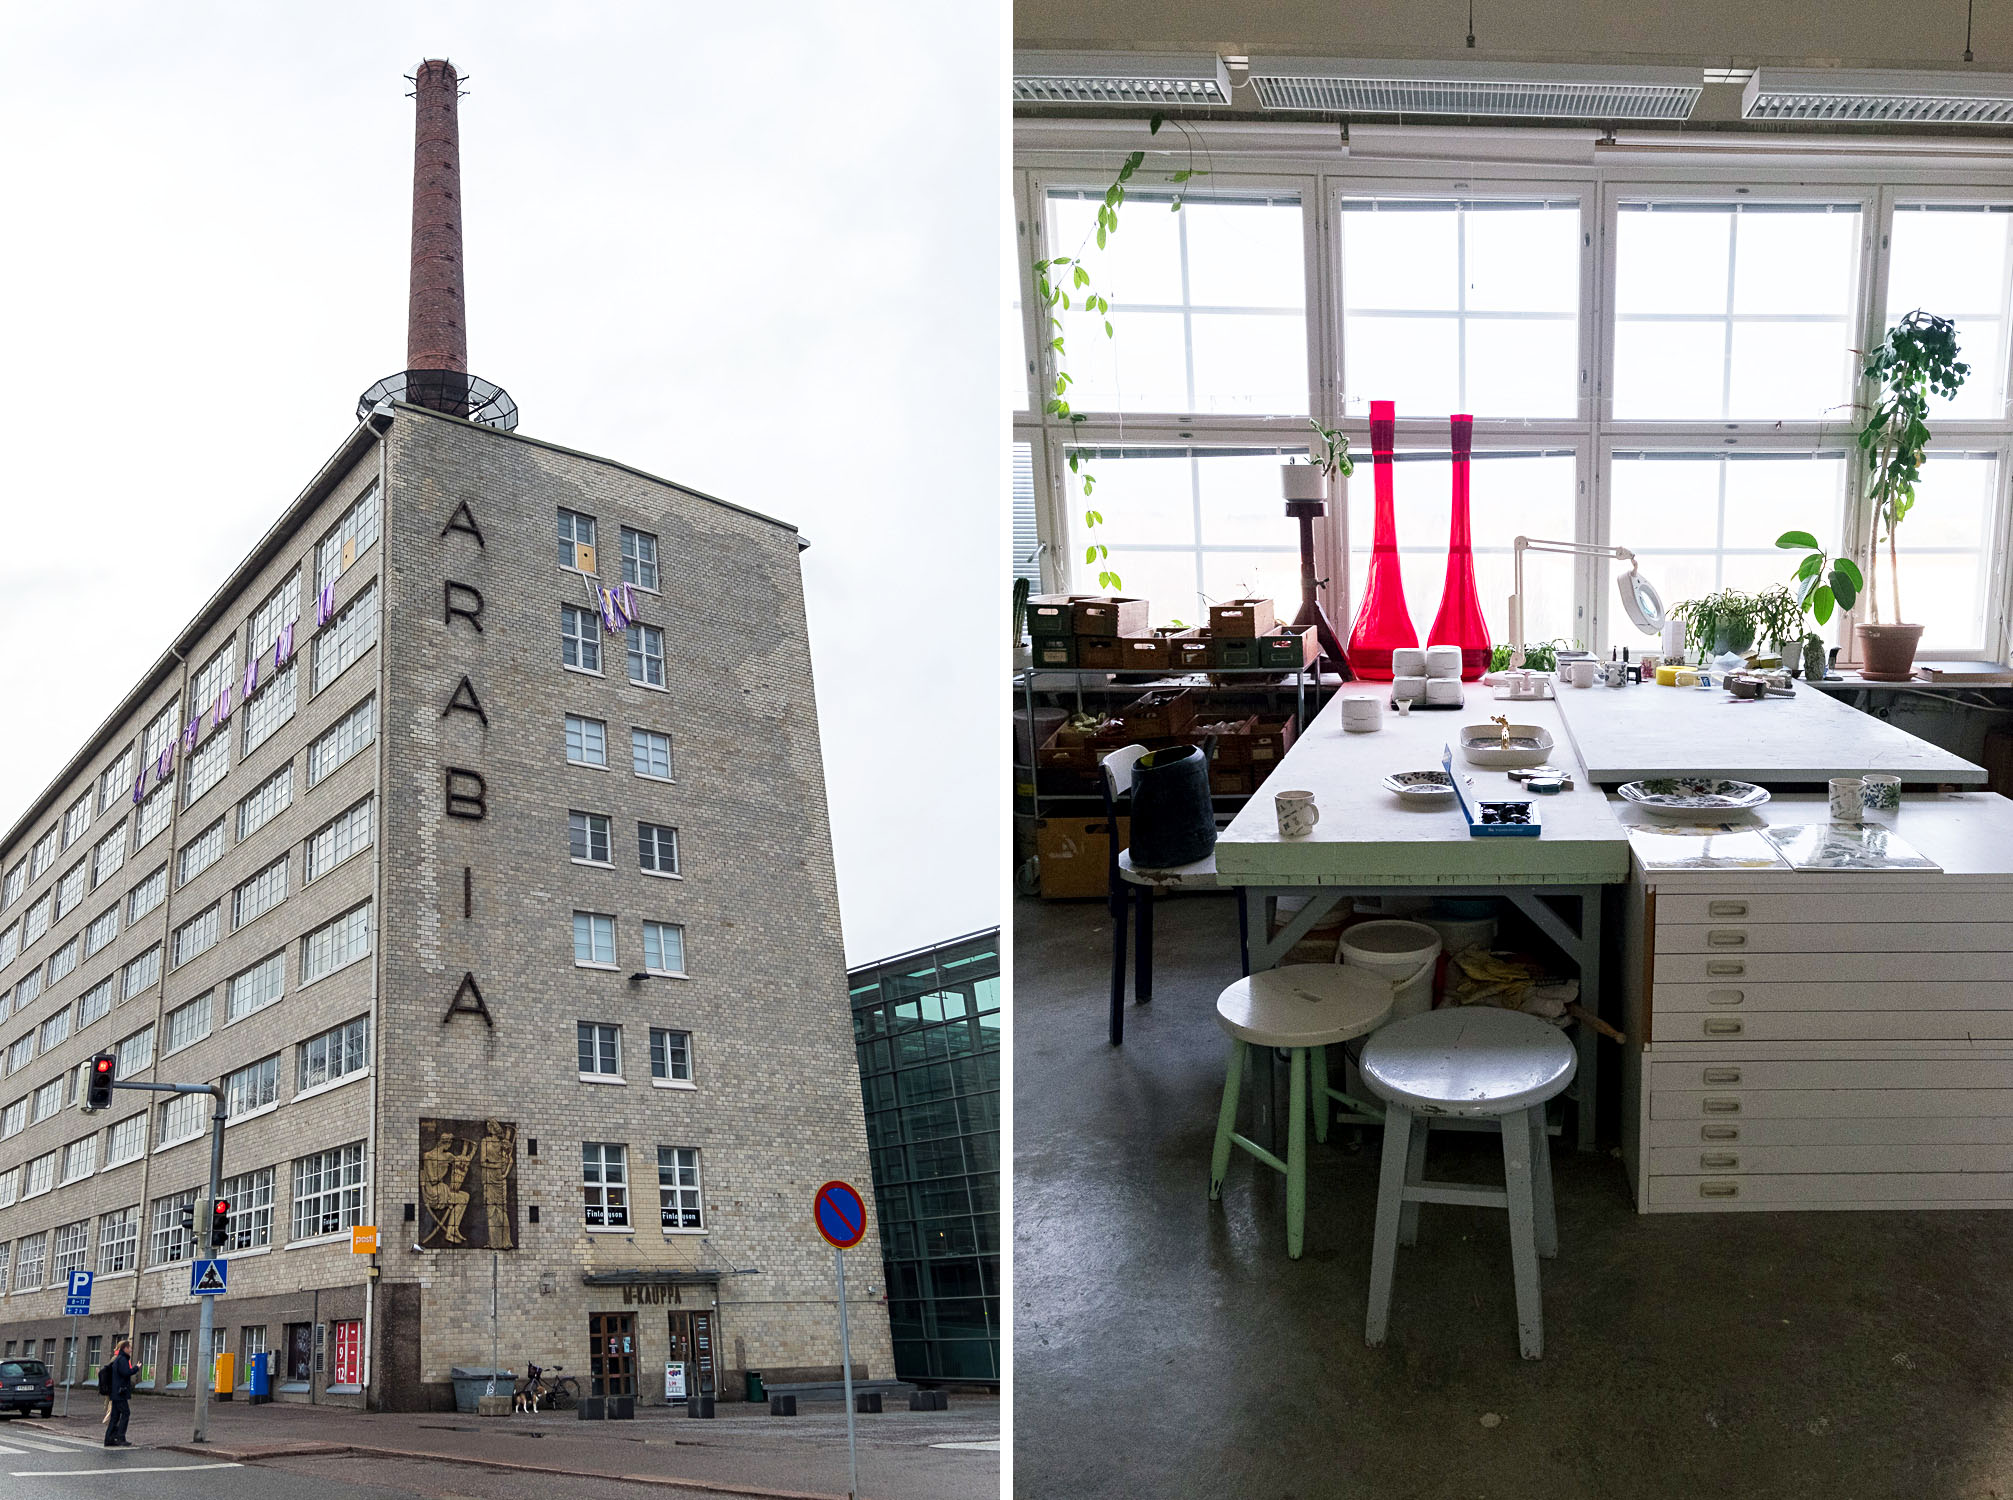 Arabia and Iittala Centre - Helsinki: A Two-Day City Guide to The Finnish Capital